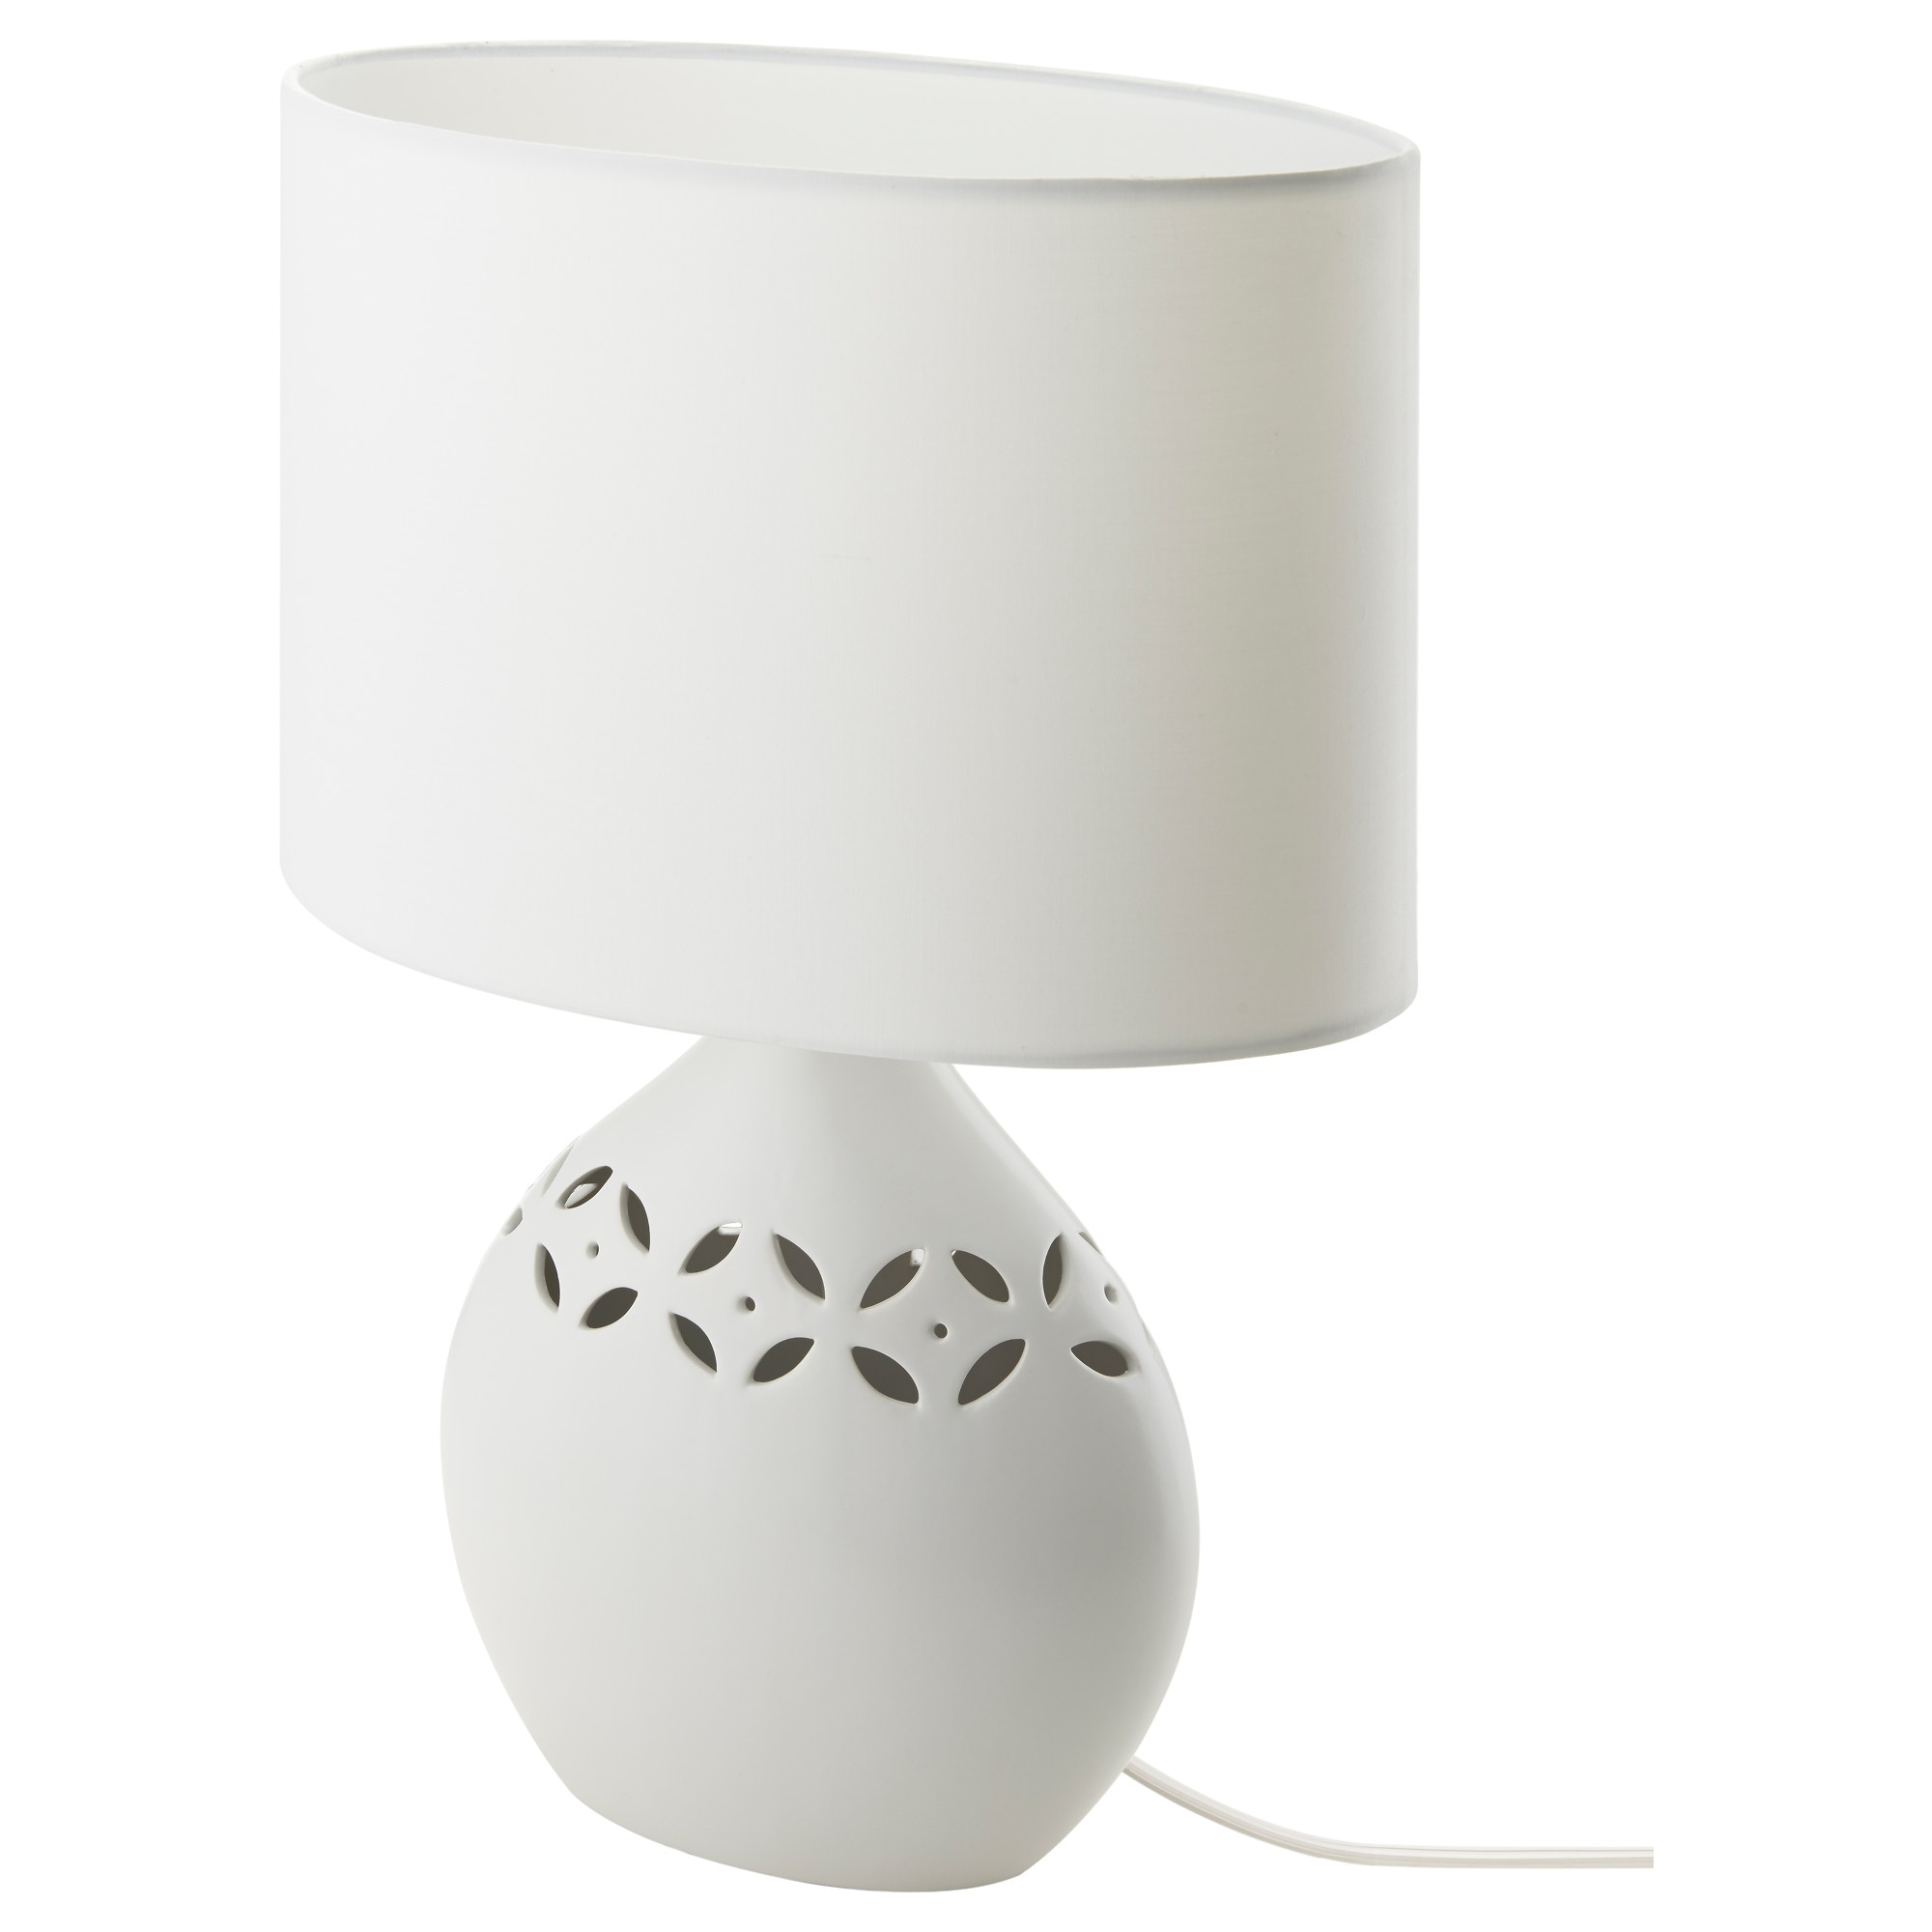 White Table Lamp - Kv ve table lamp ceramic white height 17